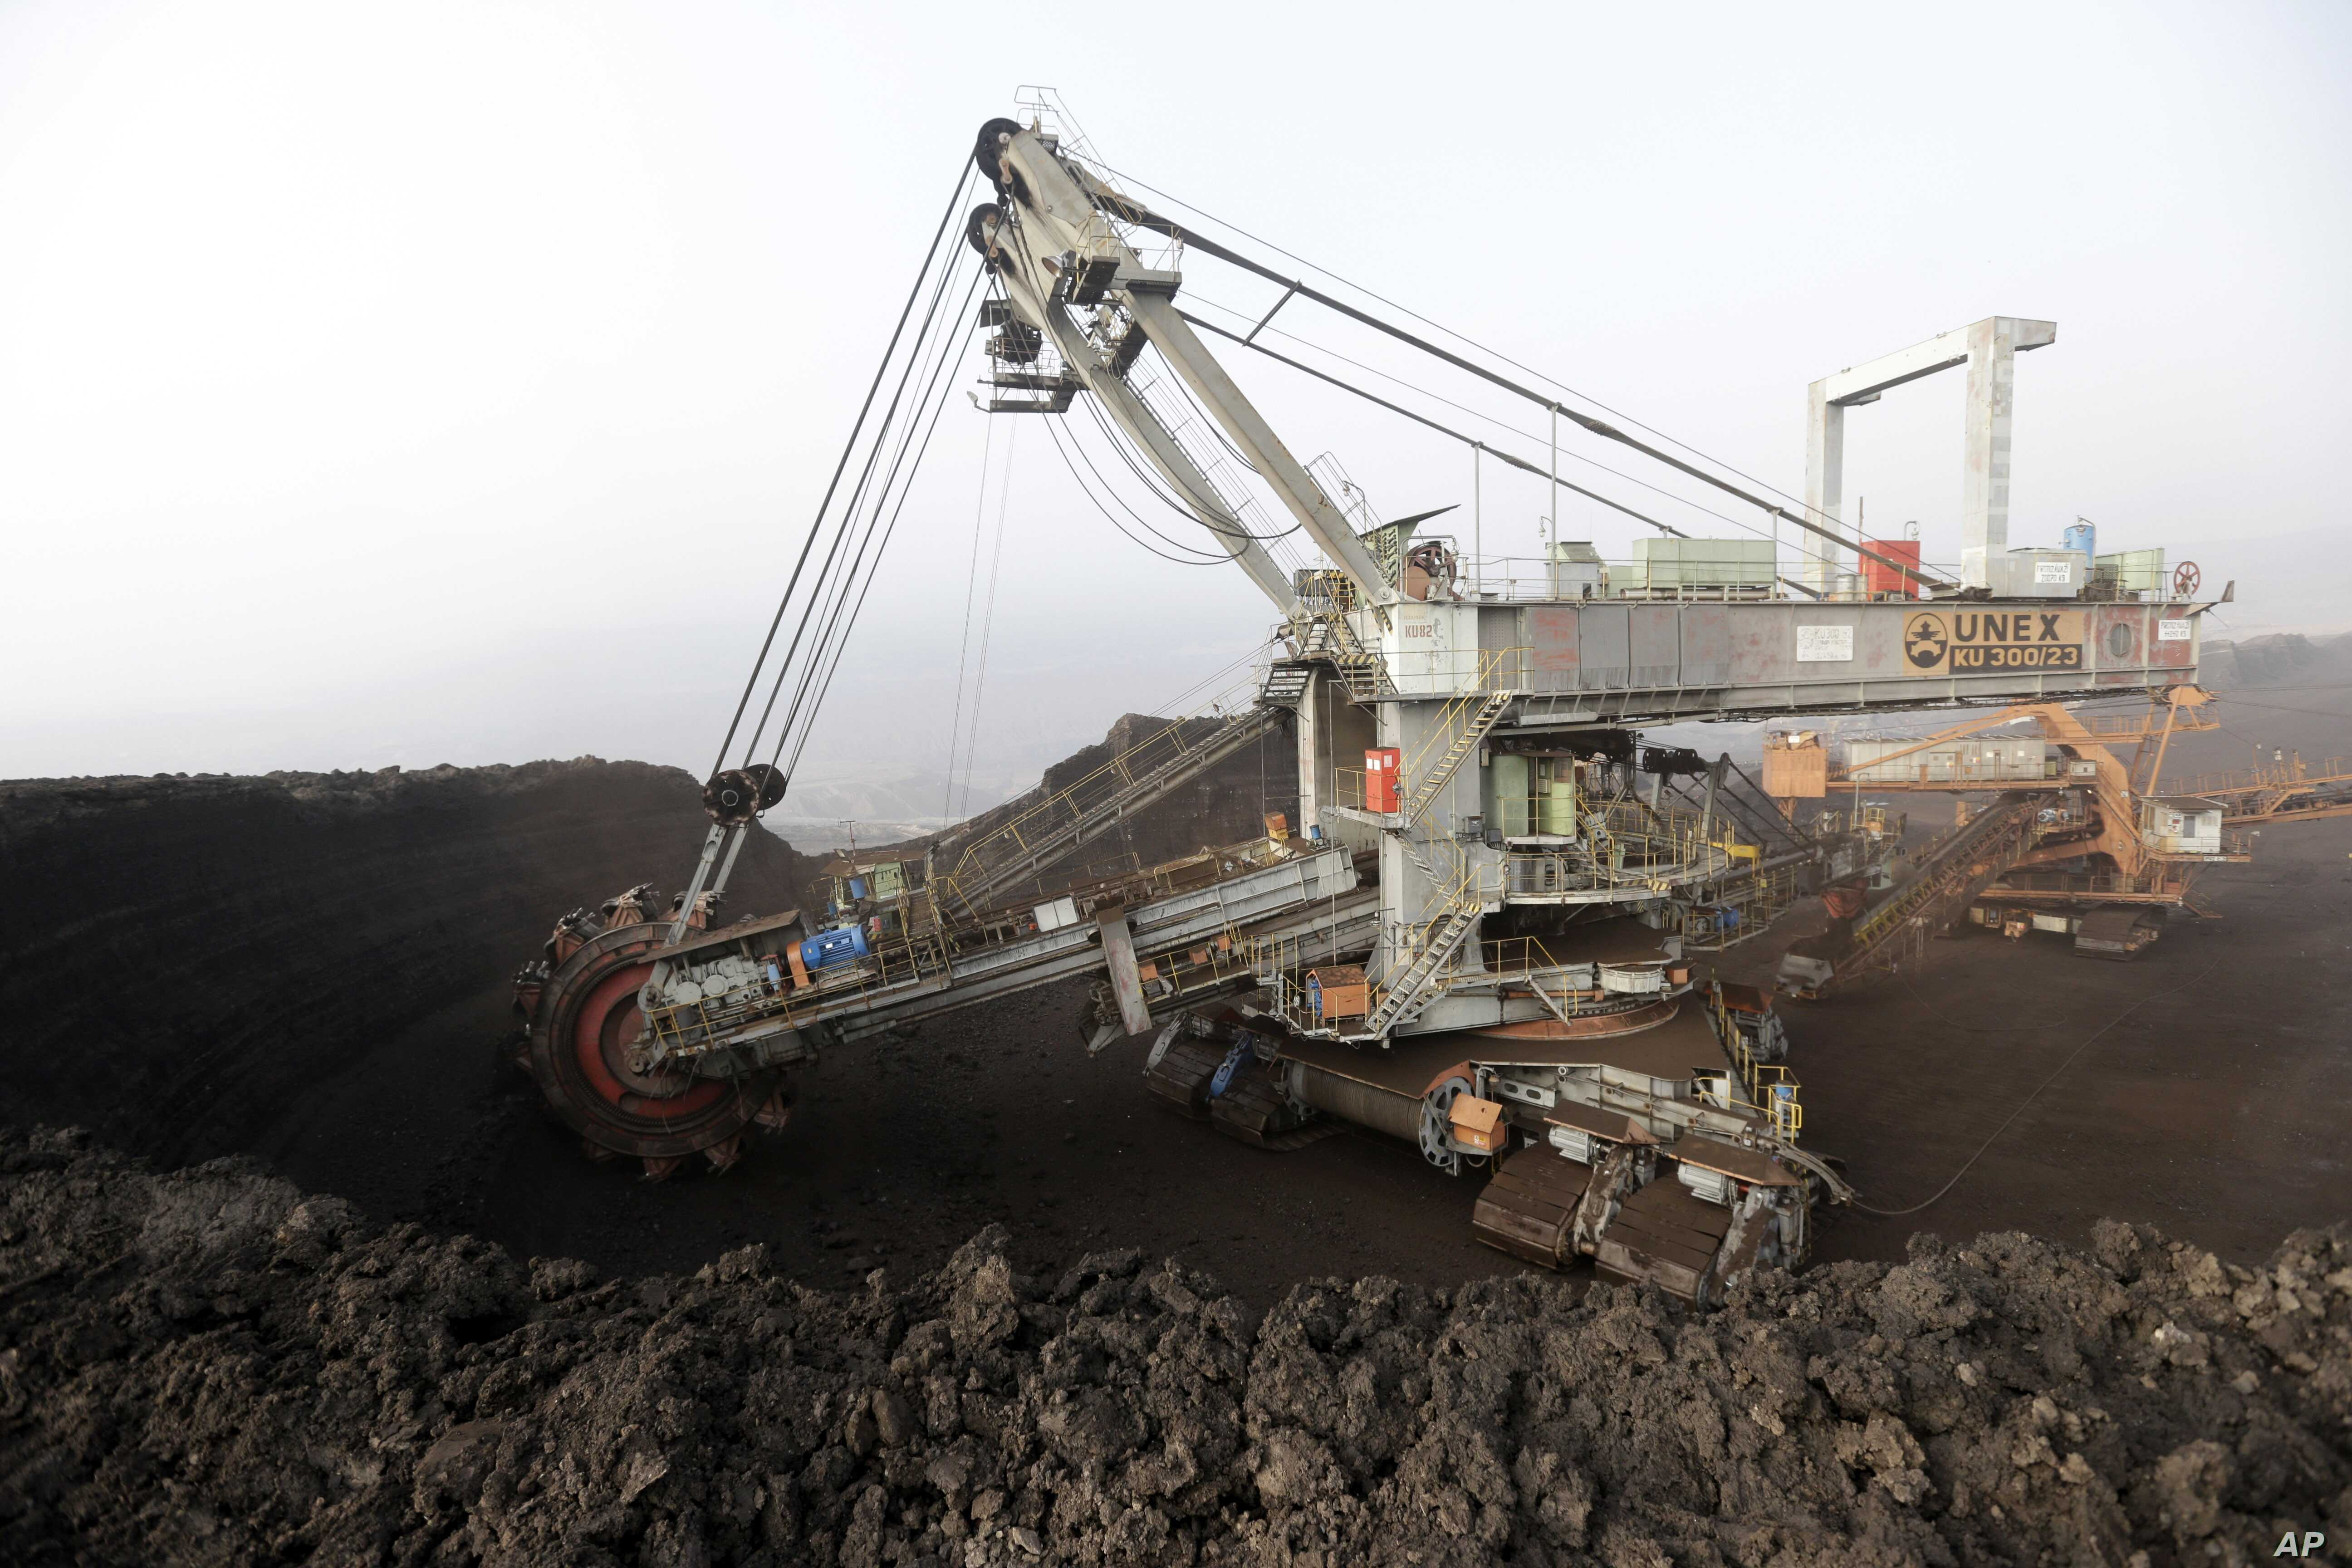 A huge excavator digs in a giant open-pit lignite mine near the Czech Republic town of Most, Nov. 6, 2015. The fossil fuel is a major source of greenhouse gases.